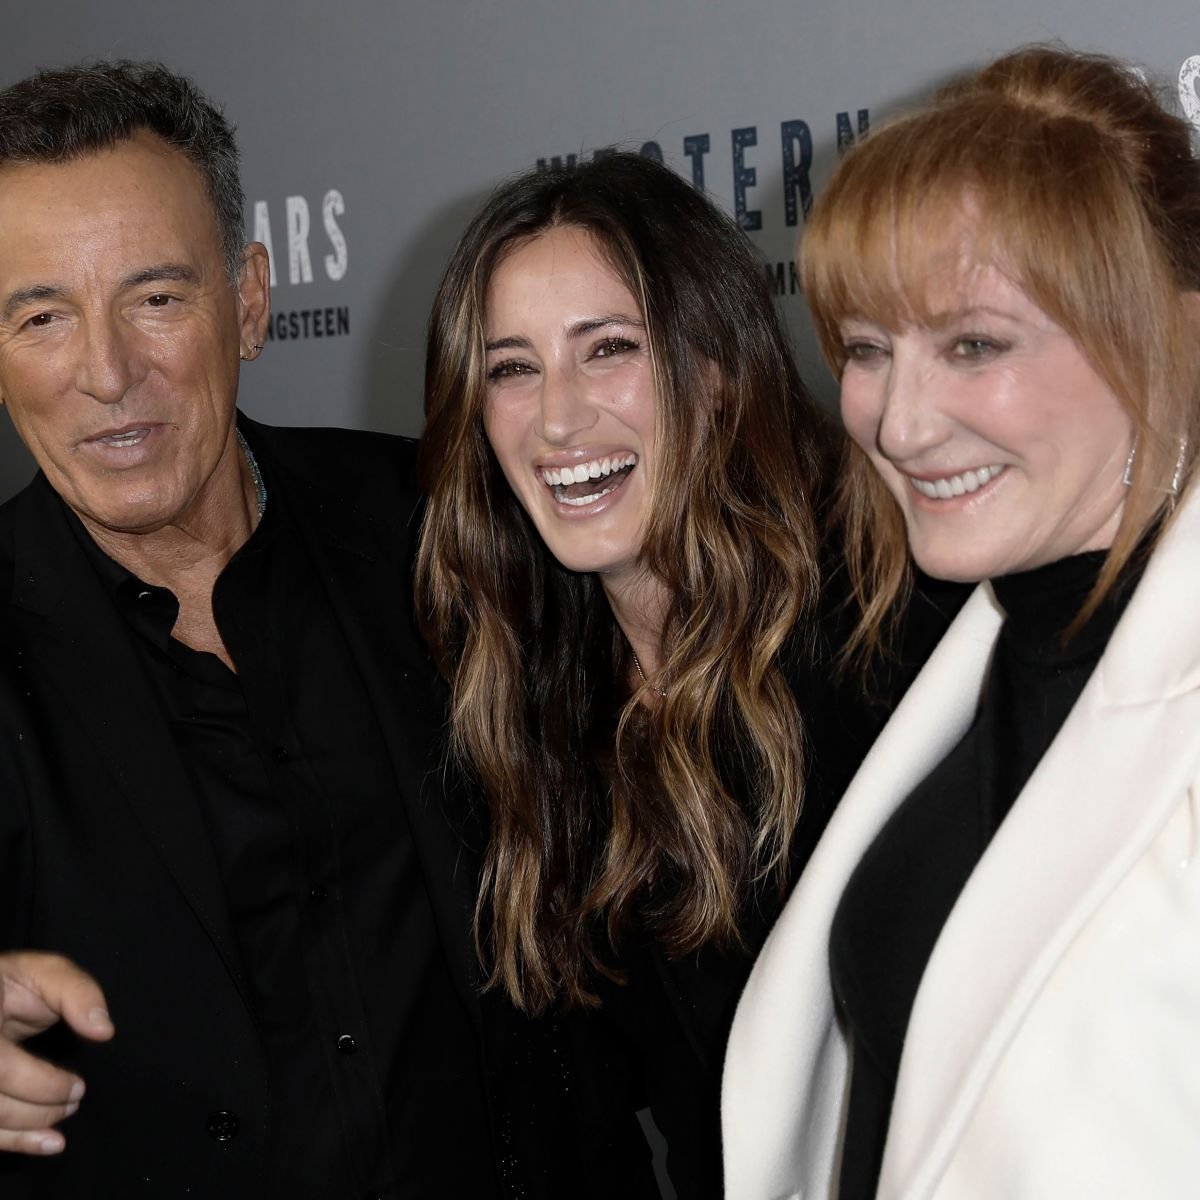 Bruce Springsteen Attends 'Western Stars' Screening With Wife Patti and Daughter Jessica